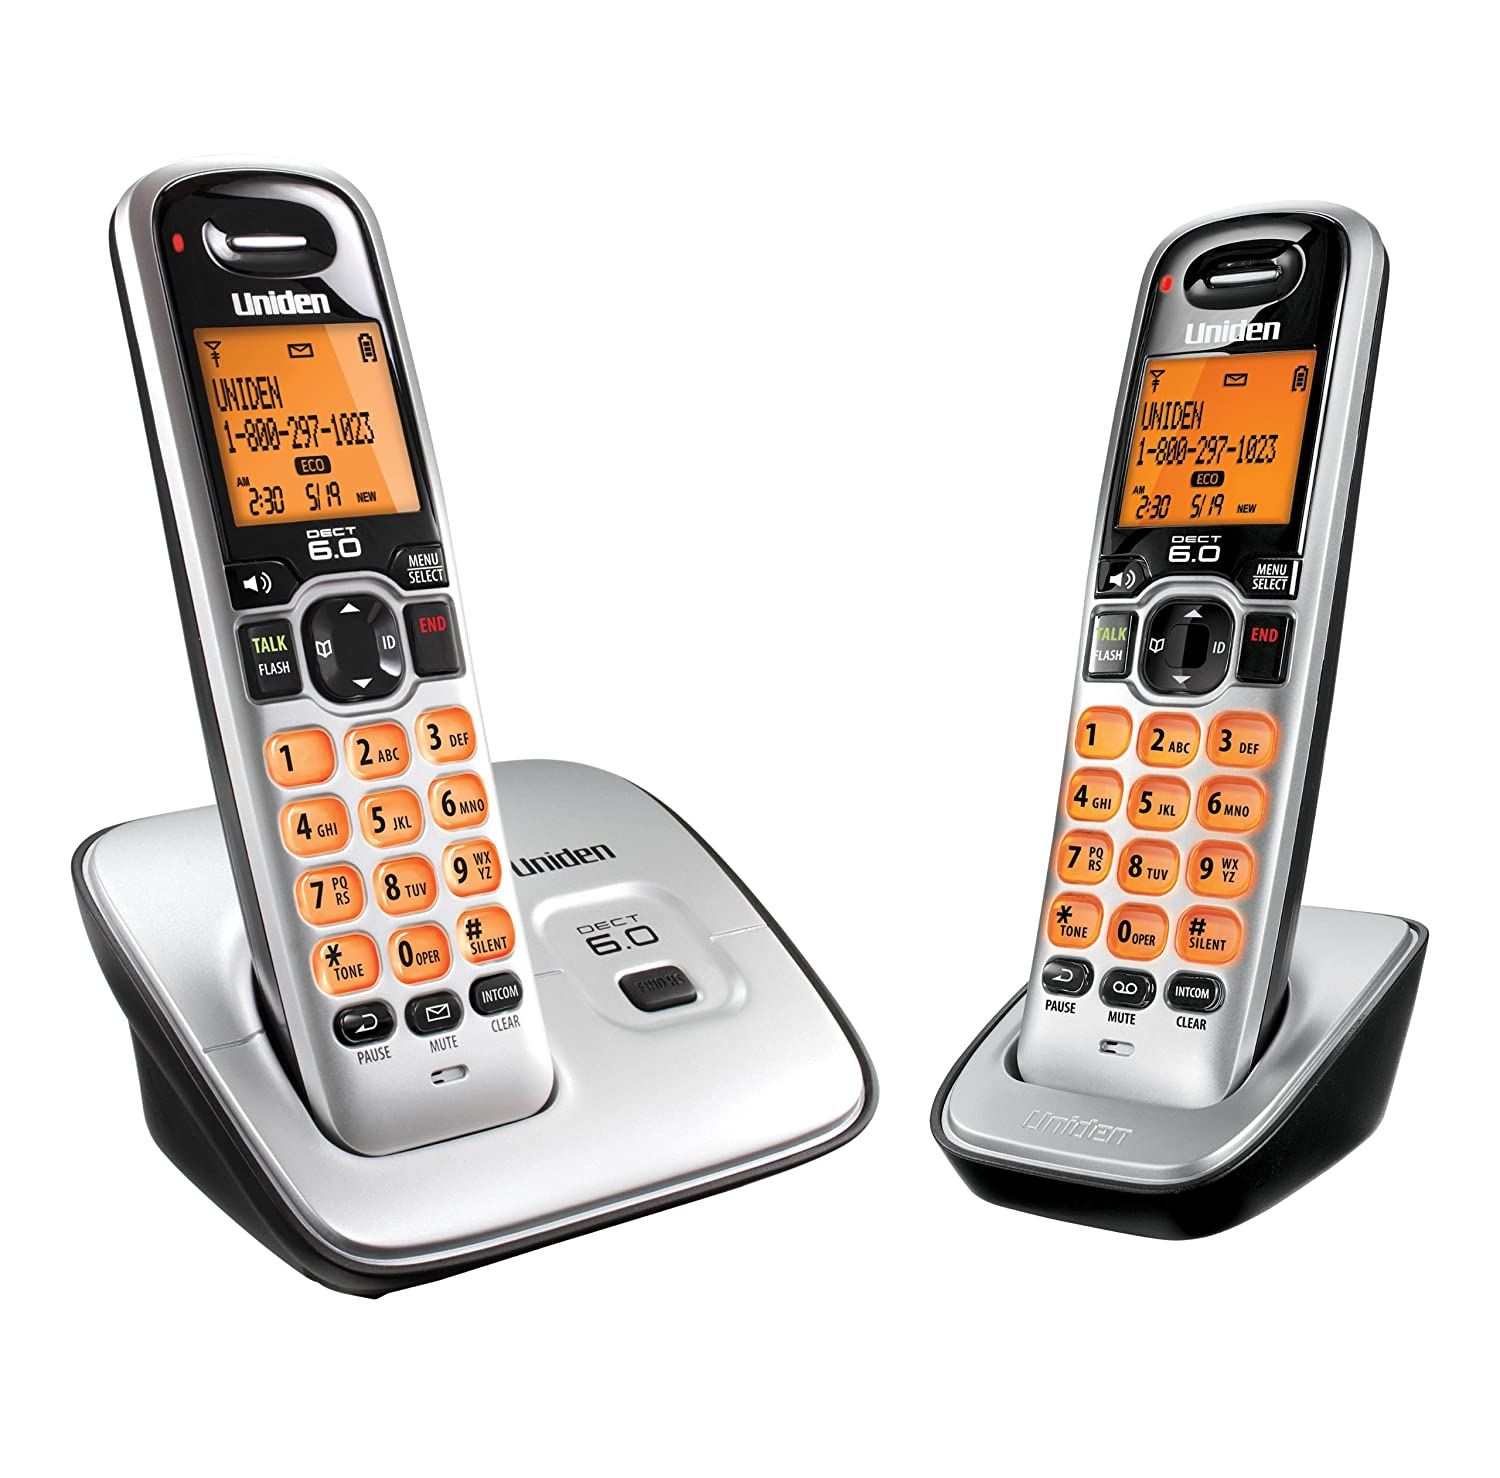 Amazon.com : Uniden D1660-3 DECT6.0 Caller ID Cordless handset with 3  handsets : Electronics